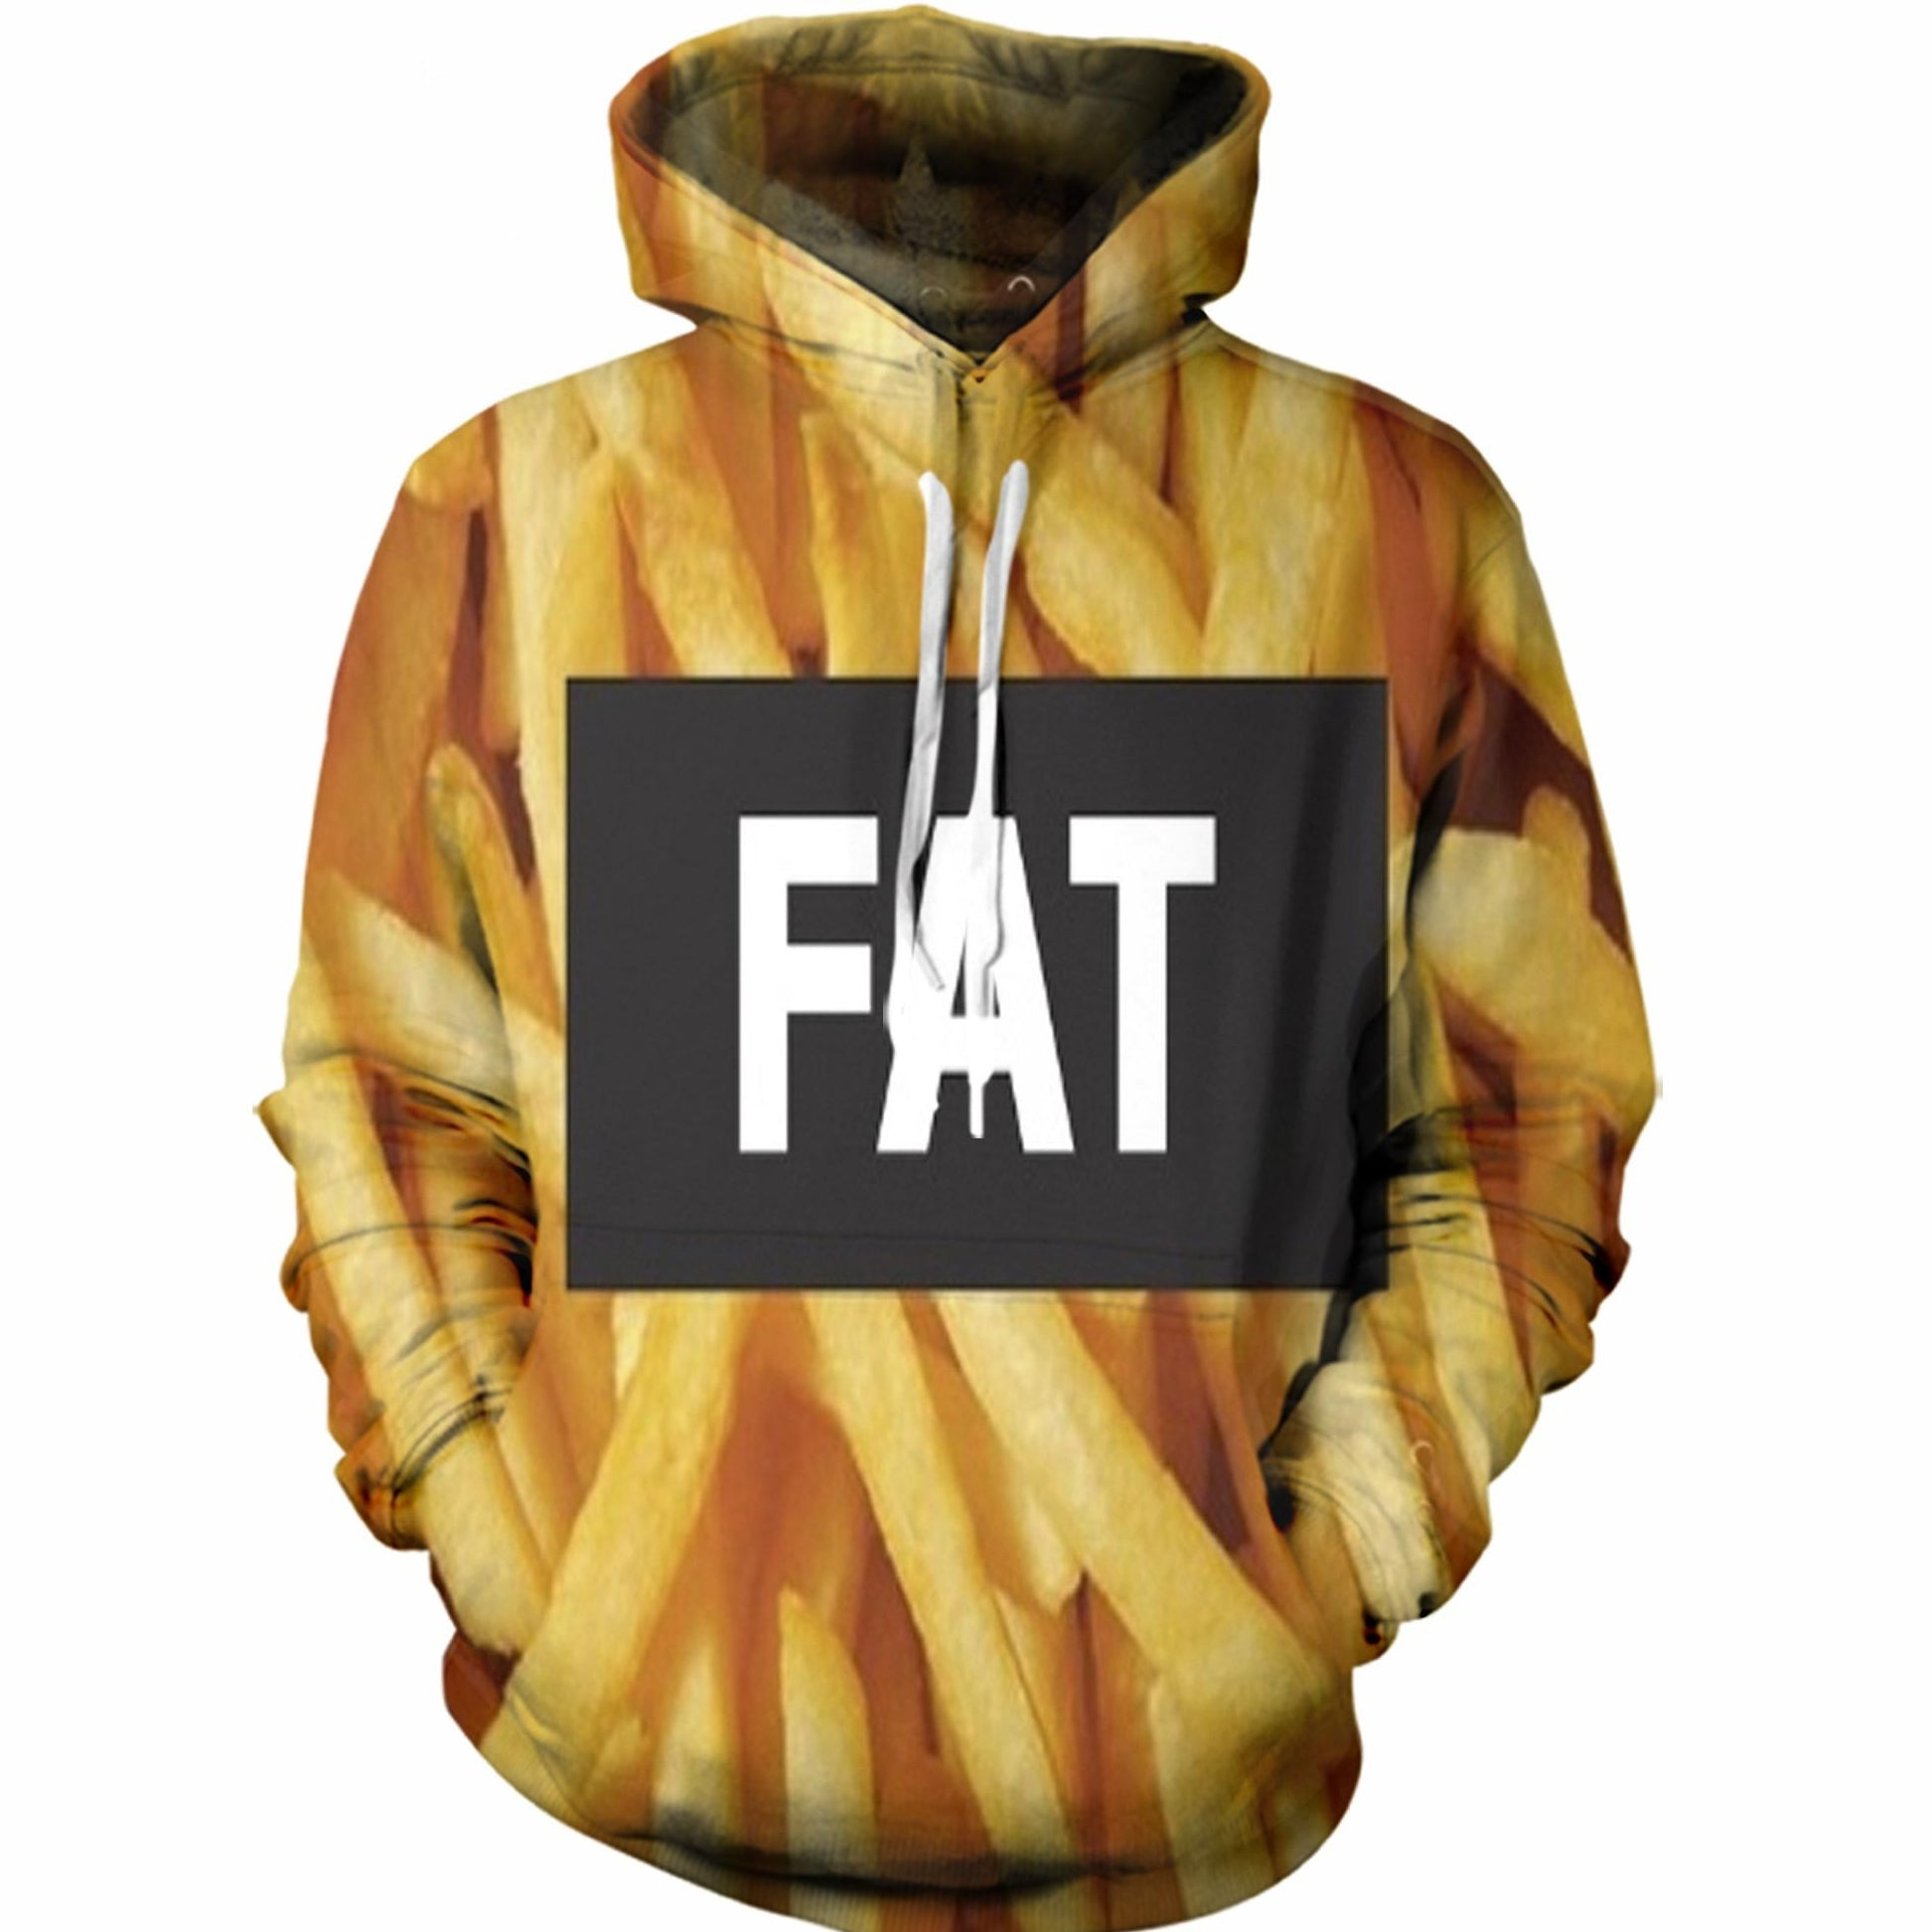 French Fry Fatty Hoodie